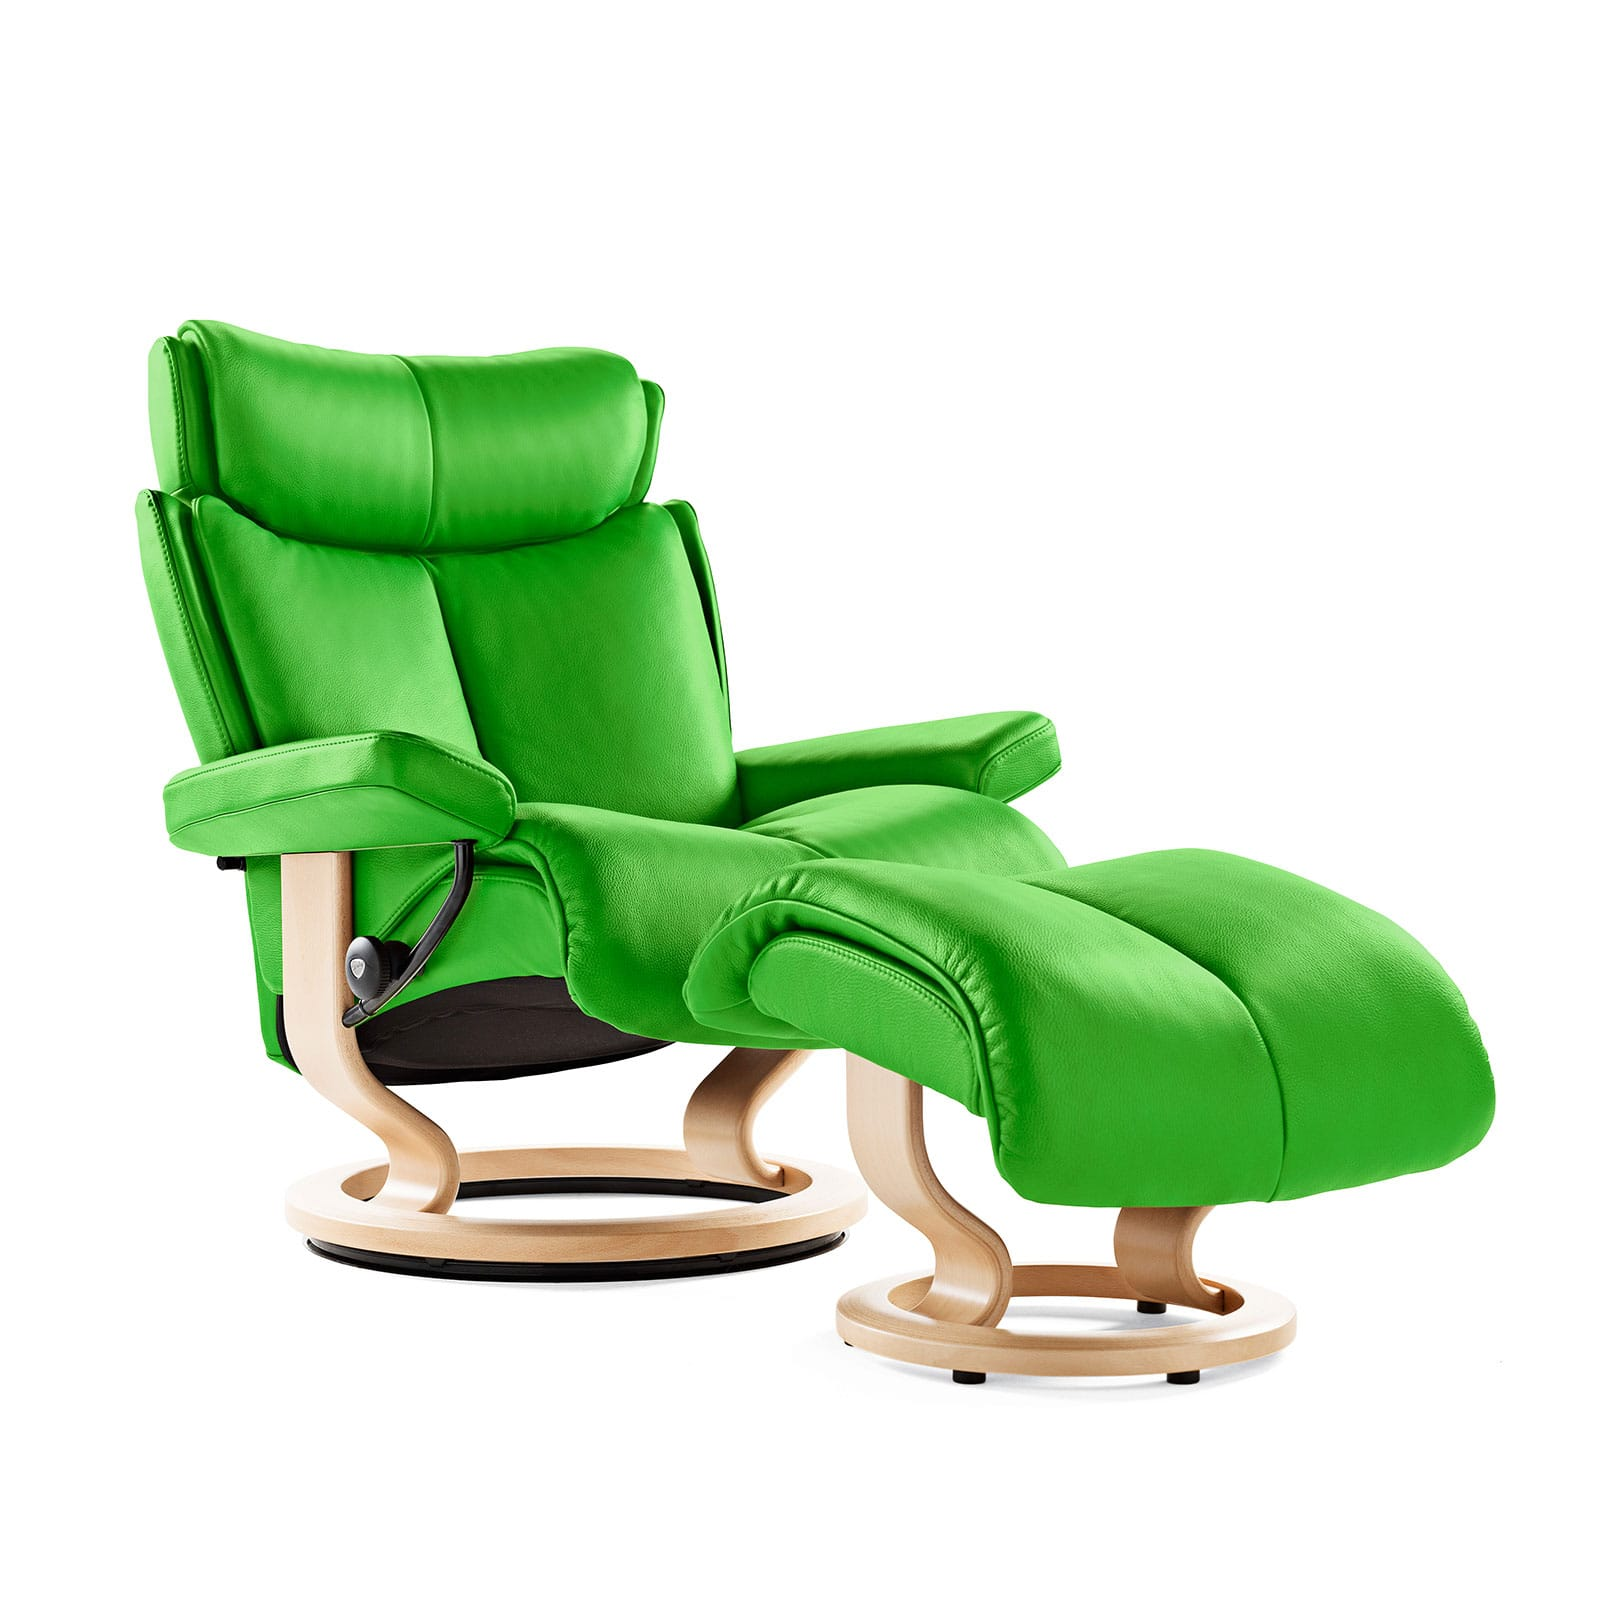 Sessel Stressless Preise Stressless Sessel Preise Sessel Stressless Magic Sessel